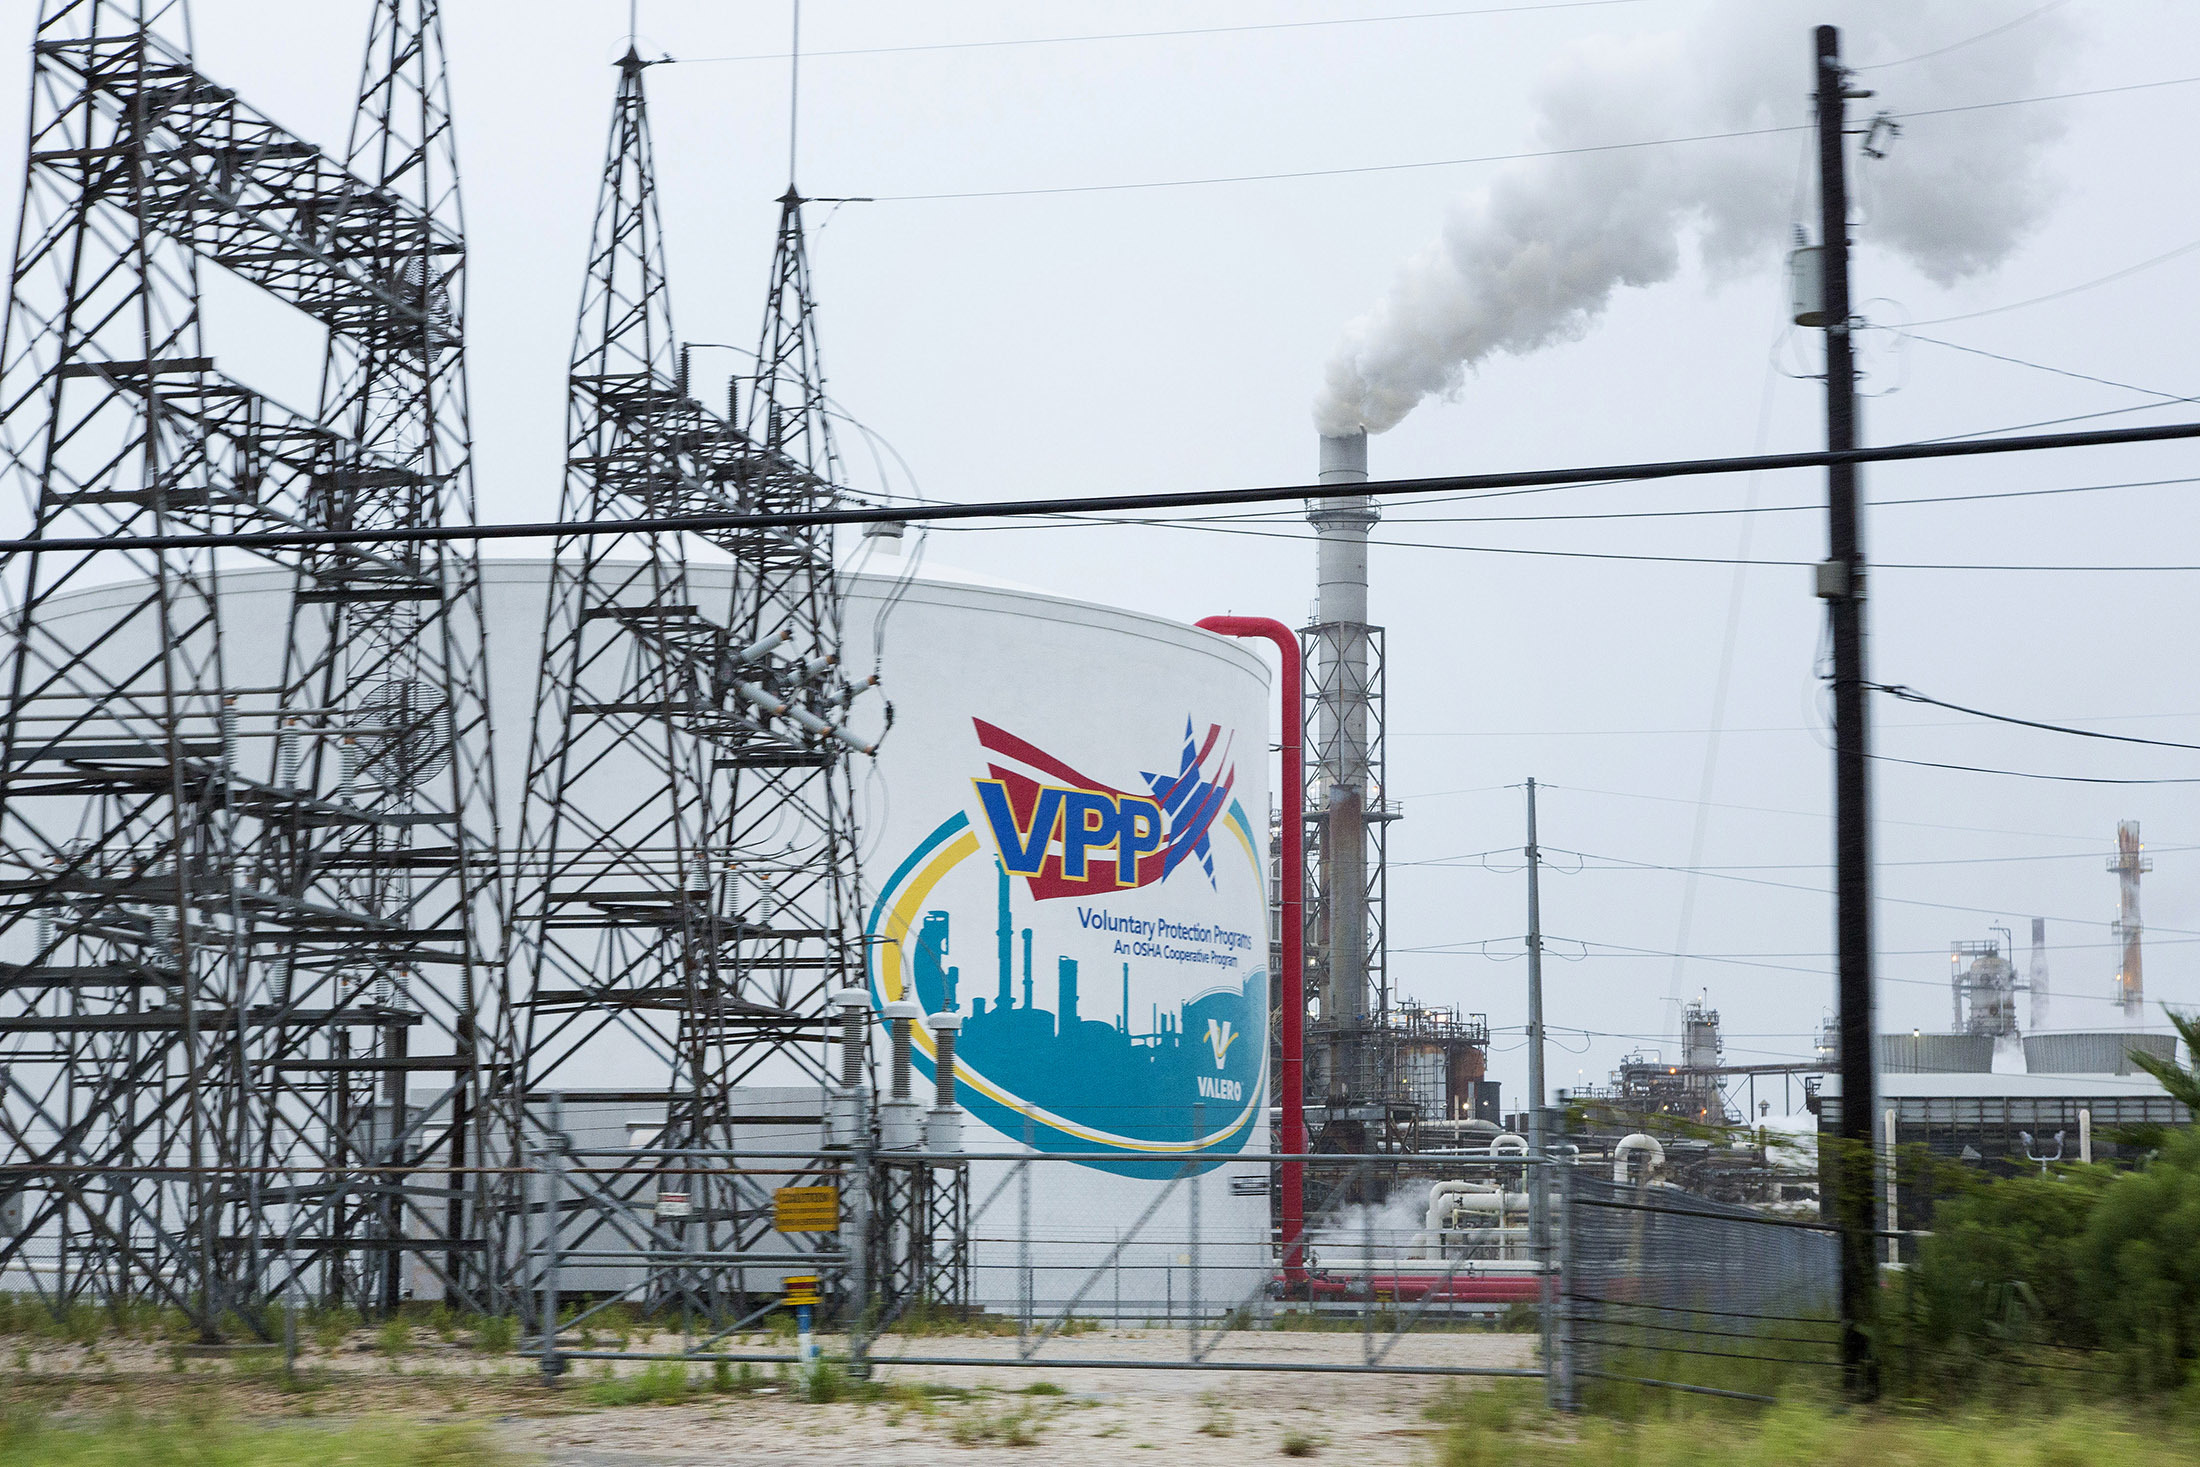 The Valero Energy Corp. refinery stands ahead of Hurricane Harvey in Texas City, Texas, U.S., on Friday, Aug. 25, 2017. Hurricane Harveystrengthened as it headed toward landfall in Texas, forecast to become the worst storm to strike the region in more than a decade. The price of gasolineralliedas it threatened to wreak havoc on the heart of America's energy sector. Photographer: F. Carter Smith/Bloomberg